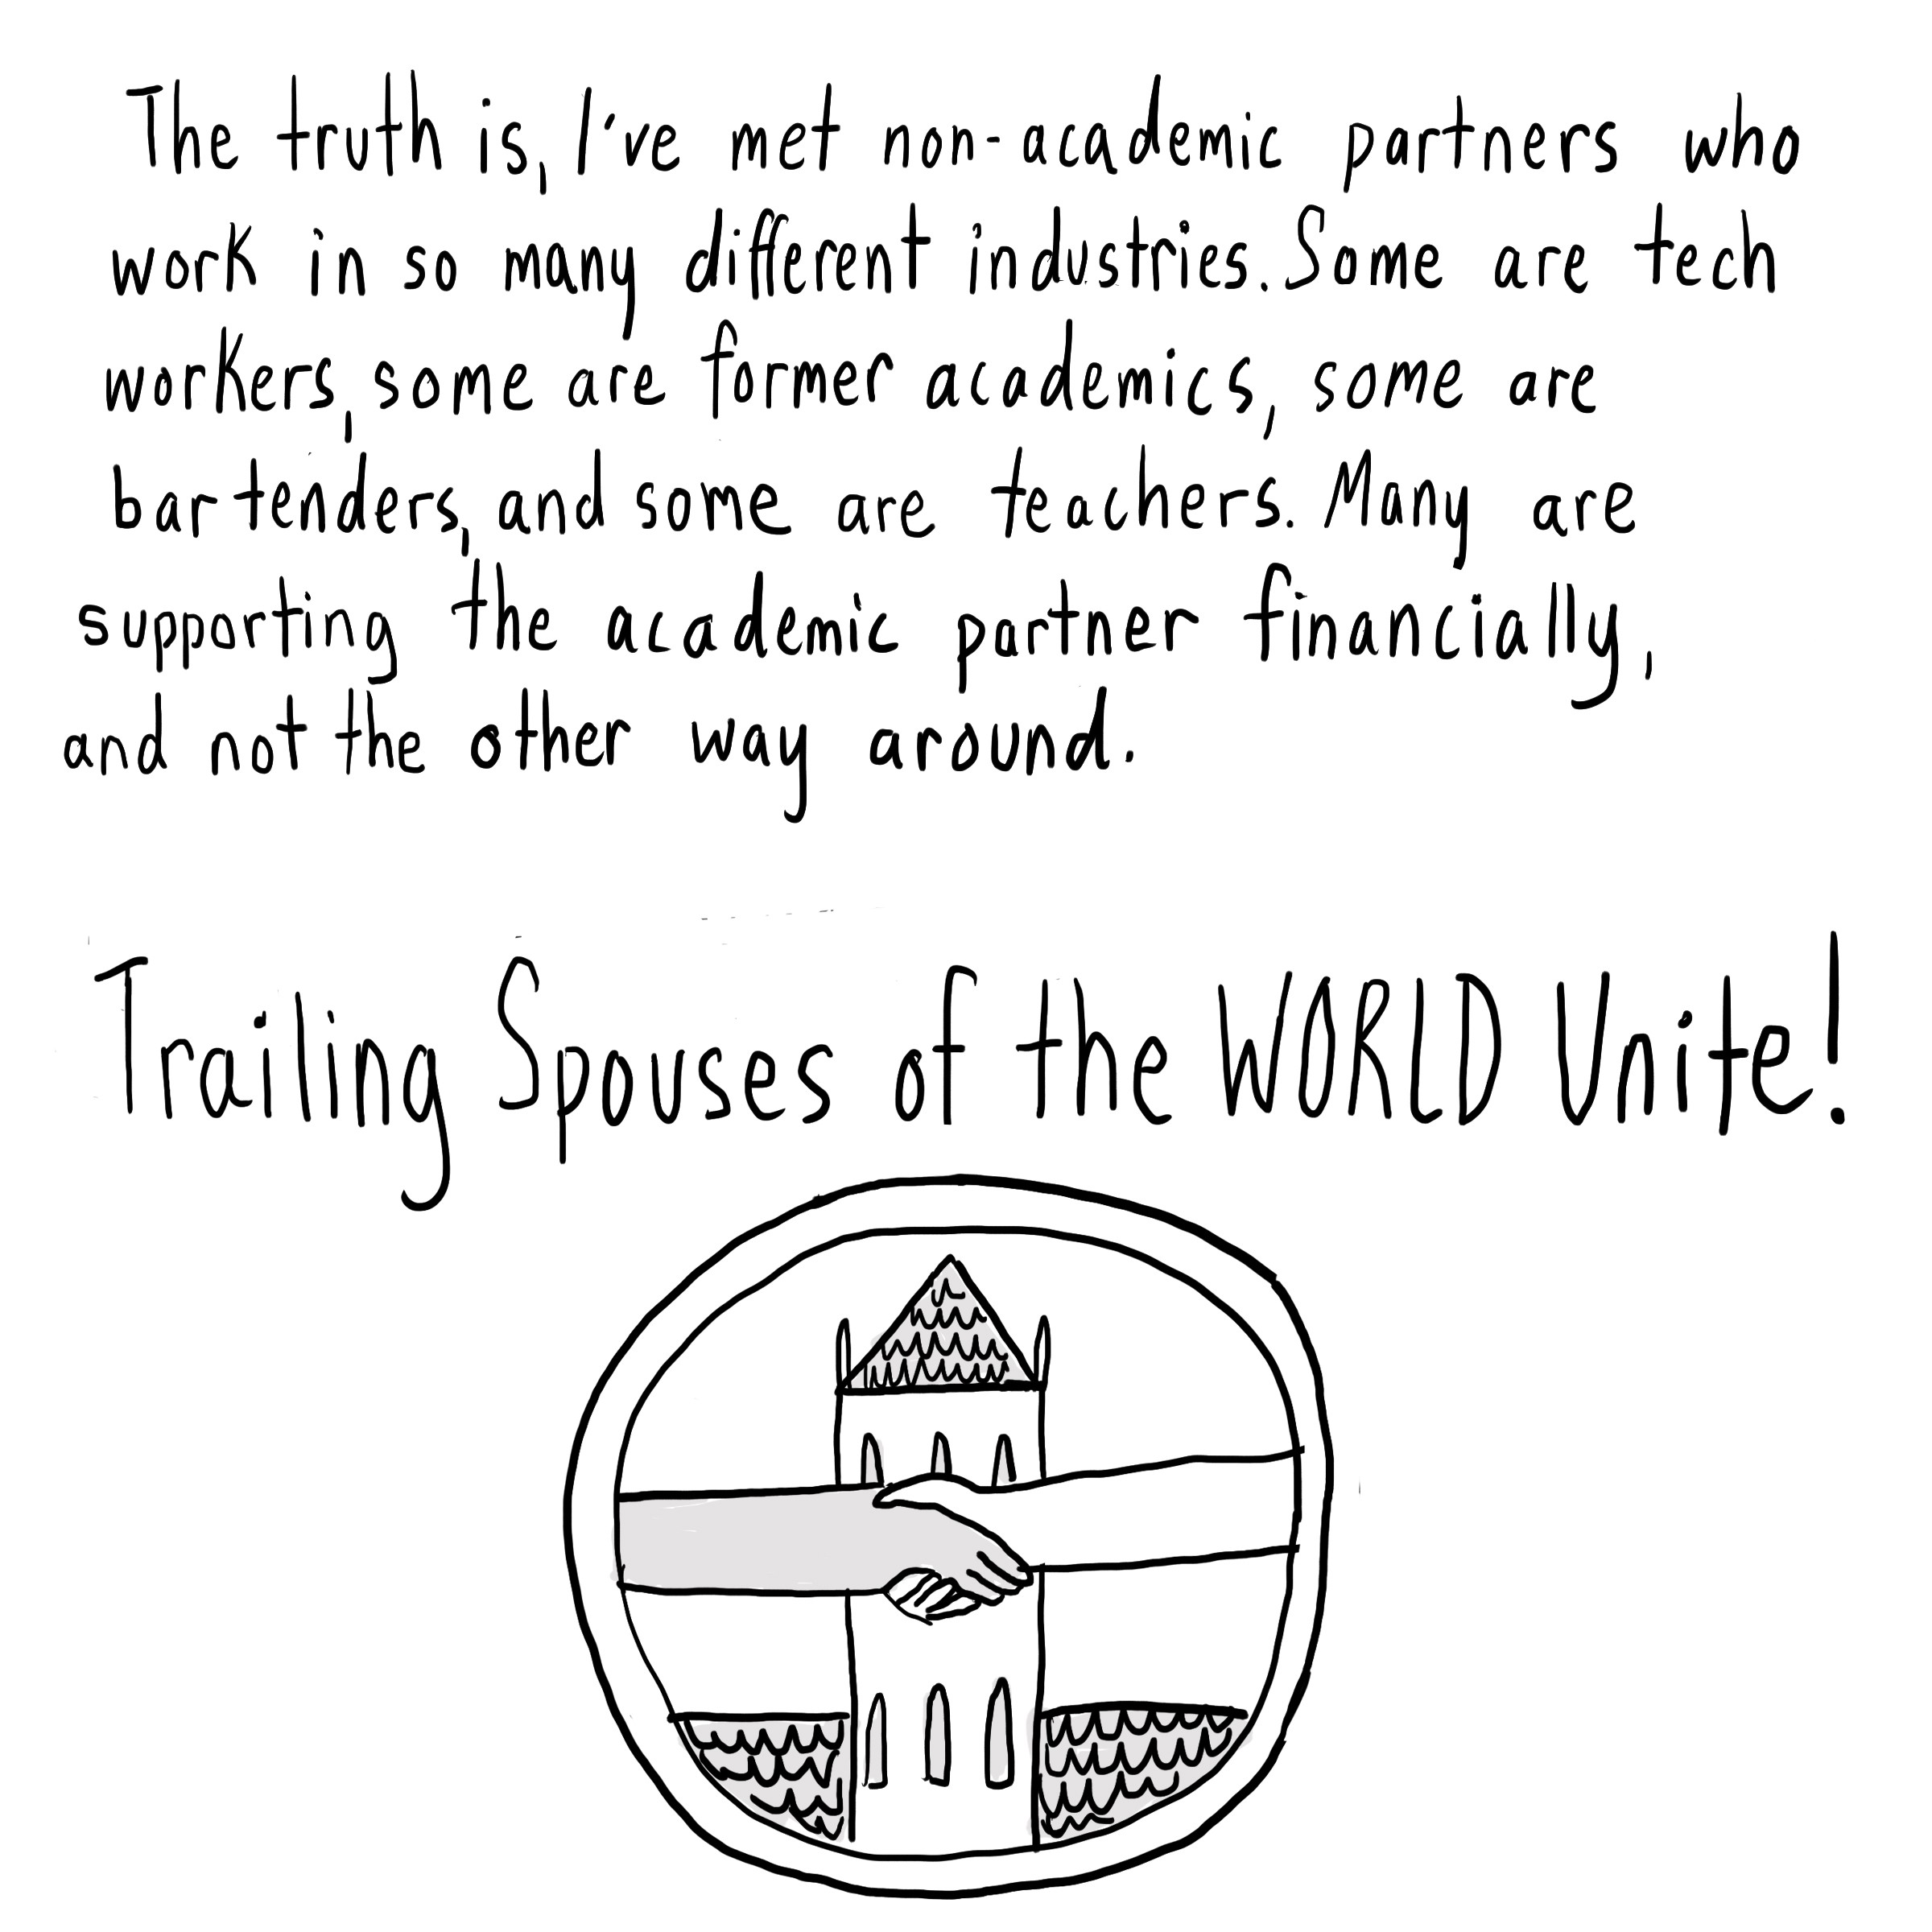 Text: The truth is I've met non-academics who work in so many different industries. Some are tech workers, some are former academics, some are bartenders, & some are teachers. Many are supporting the academic partner financially, & not the other way around. Trailing spouses of the world unite! [Closeup  of a dark-skinned and a light-skinned hand shaking in front of a Harvard-like academic building.]